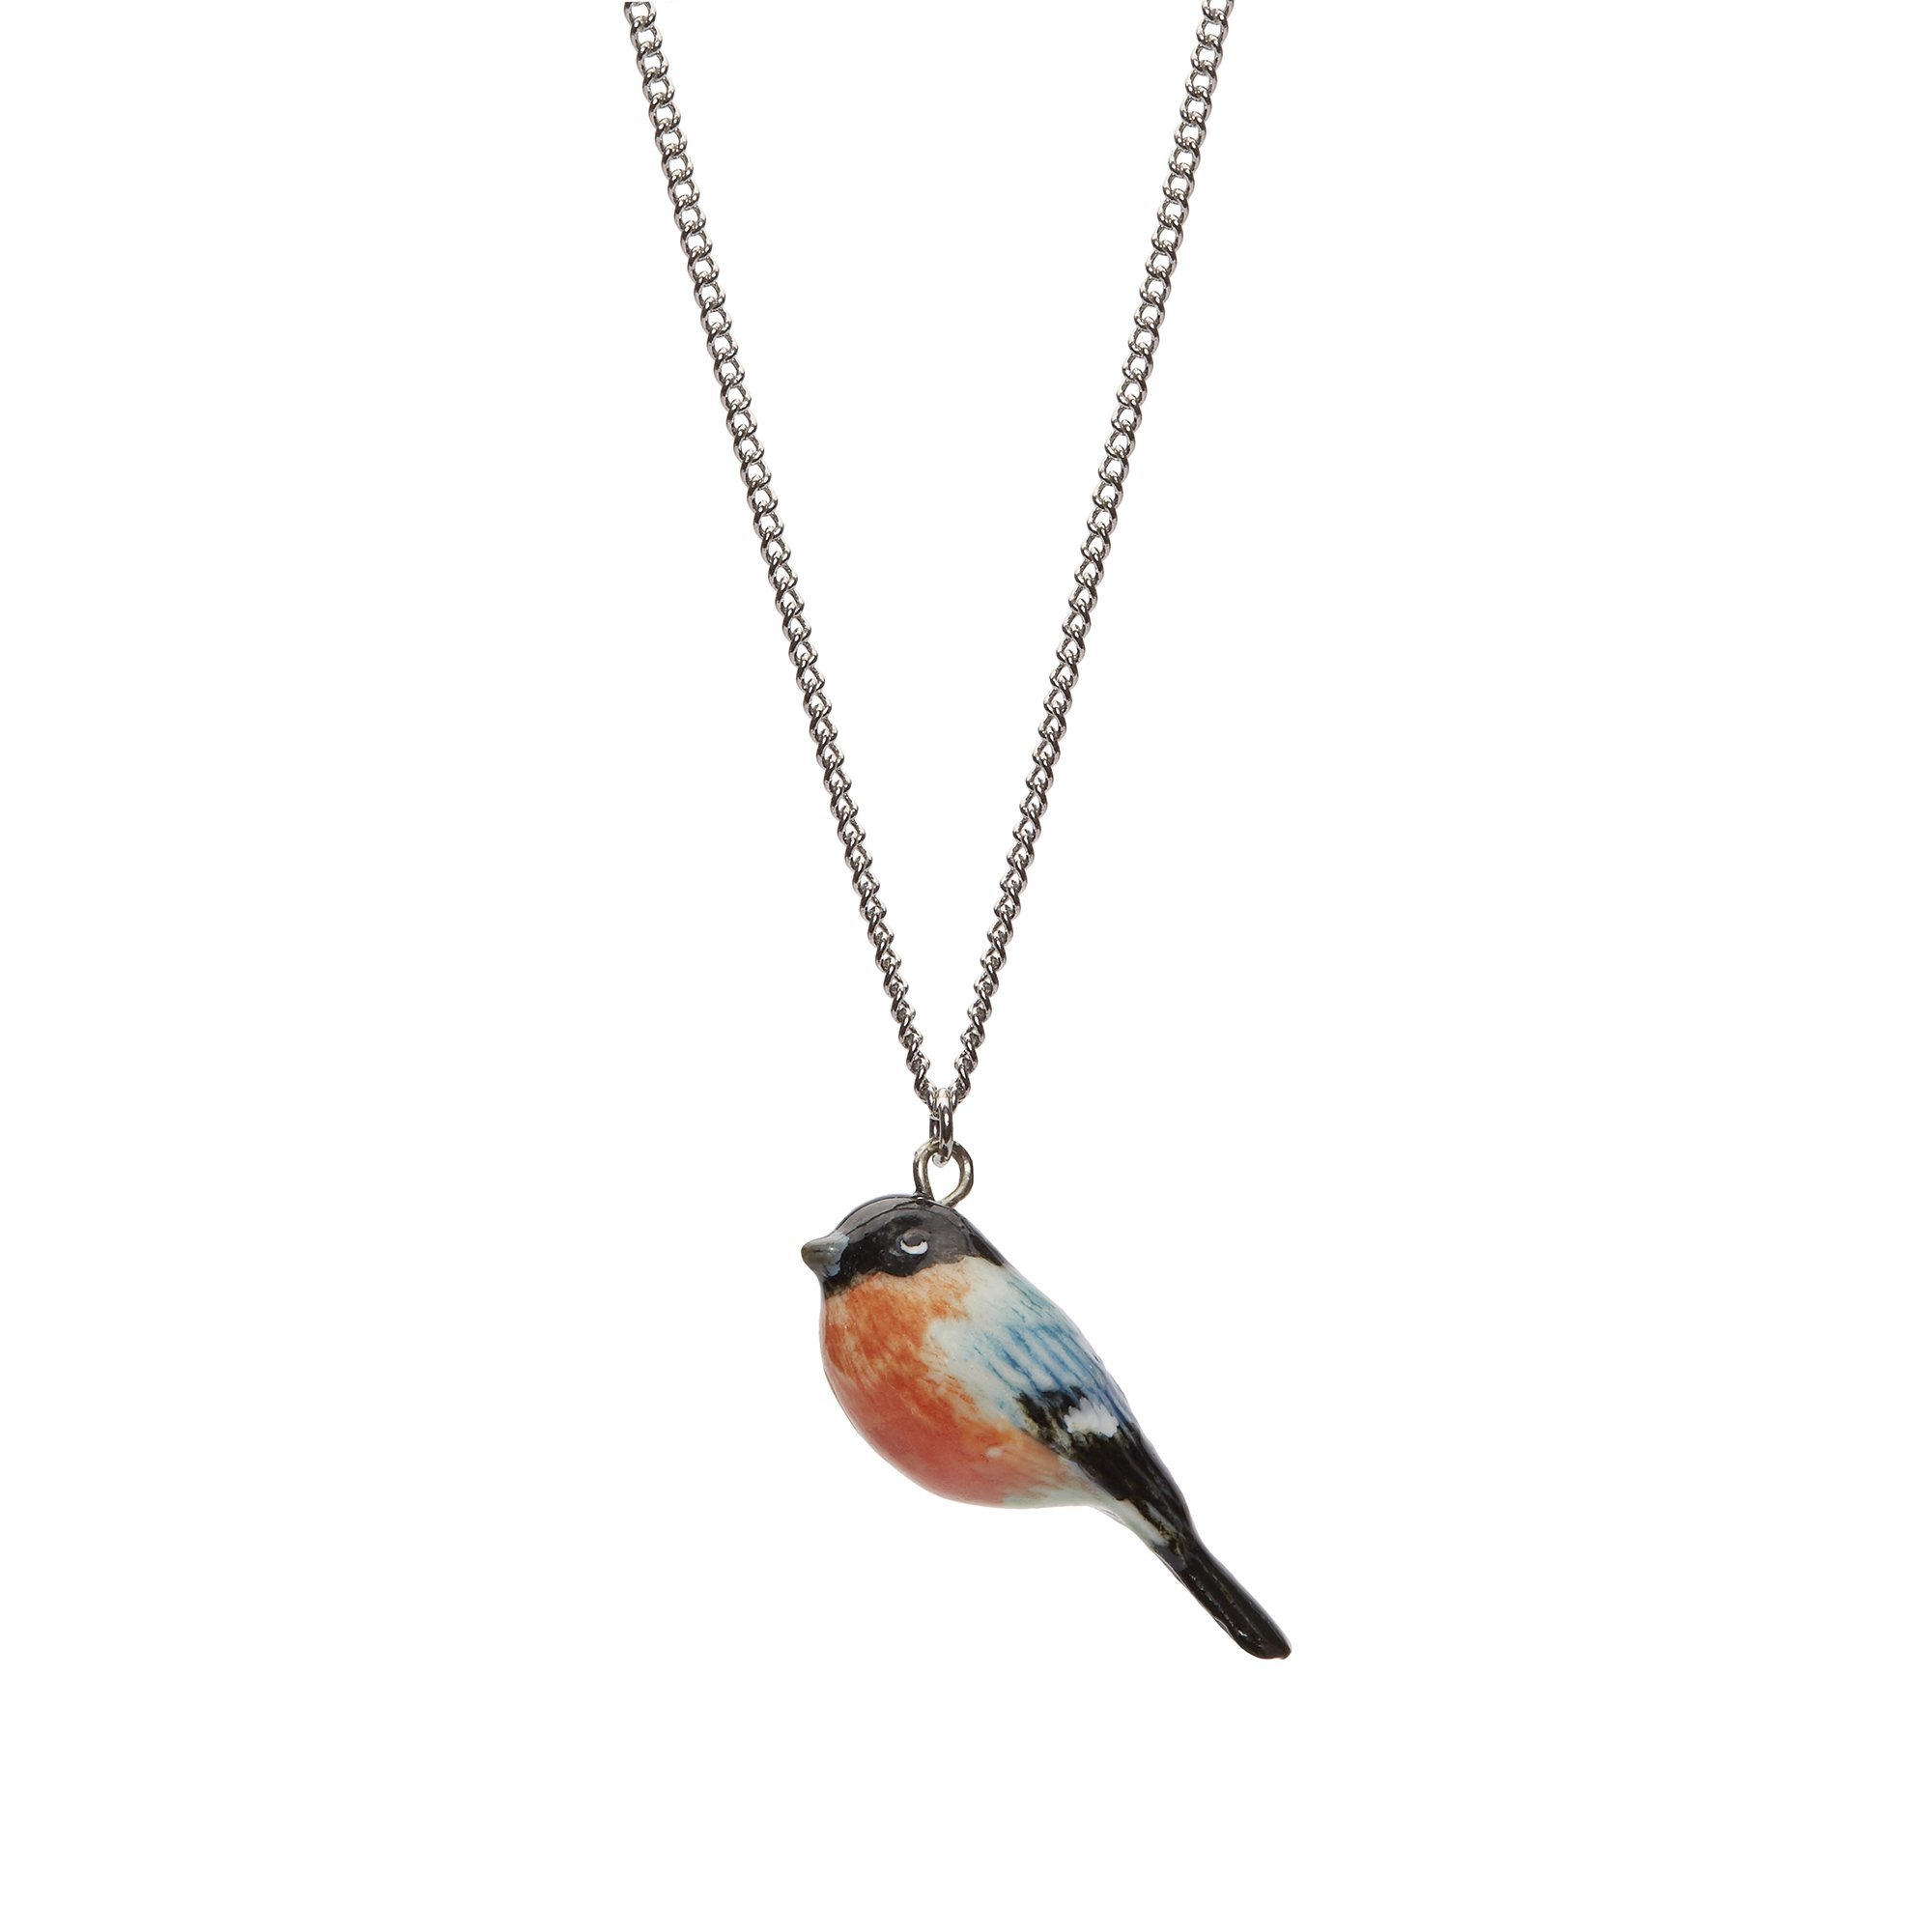 Bullfinch_Necklace_2048x2048.jpg